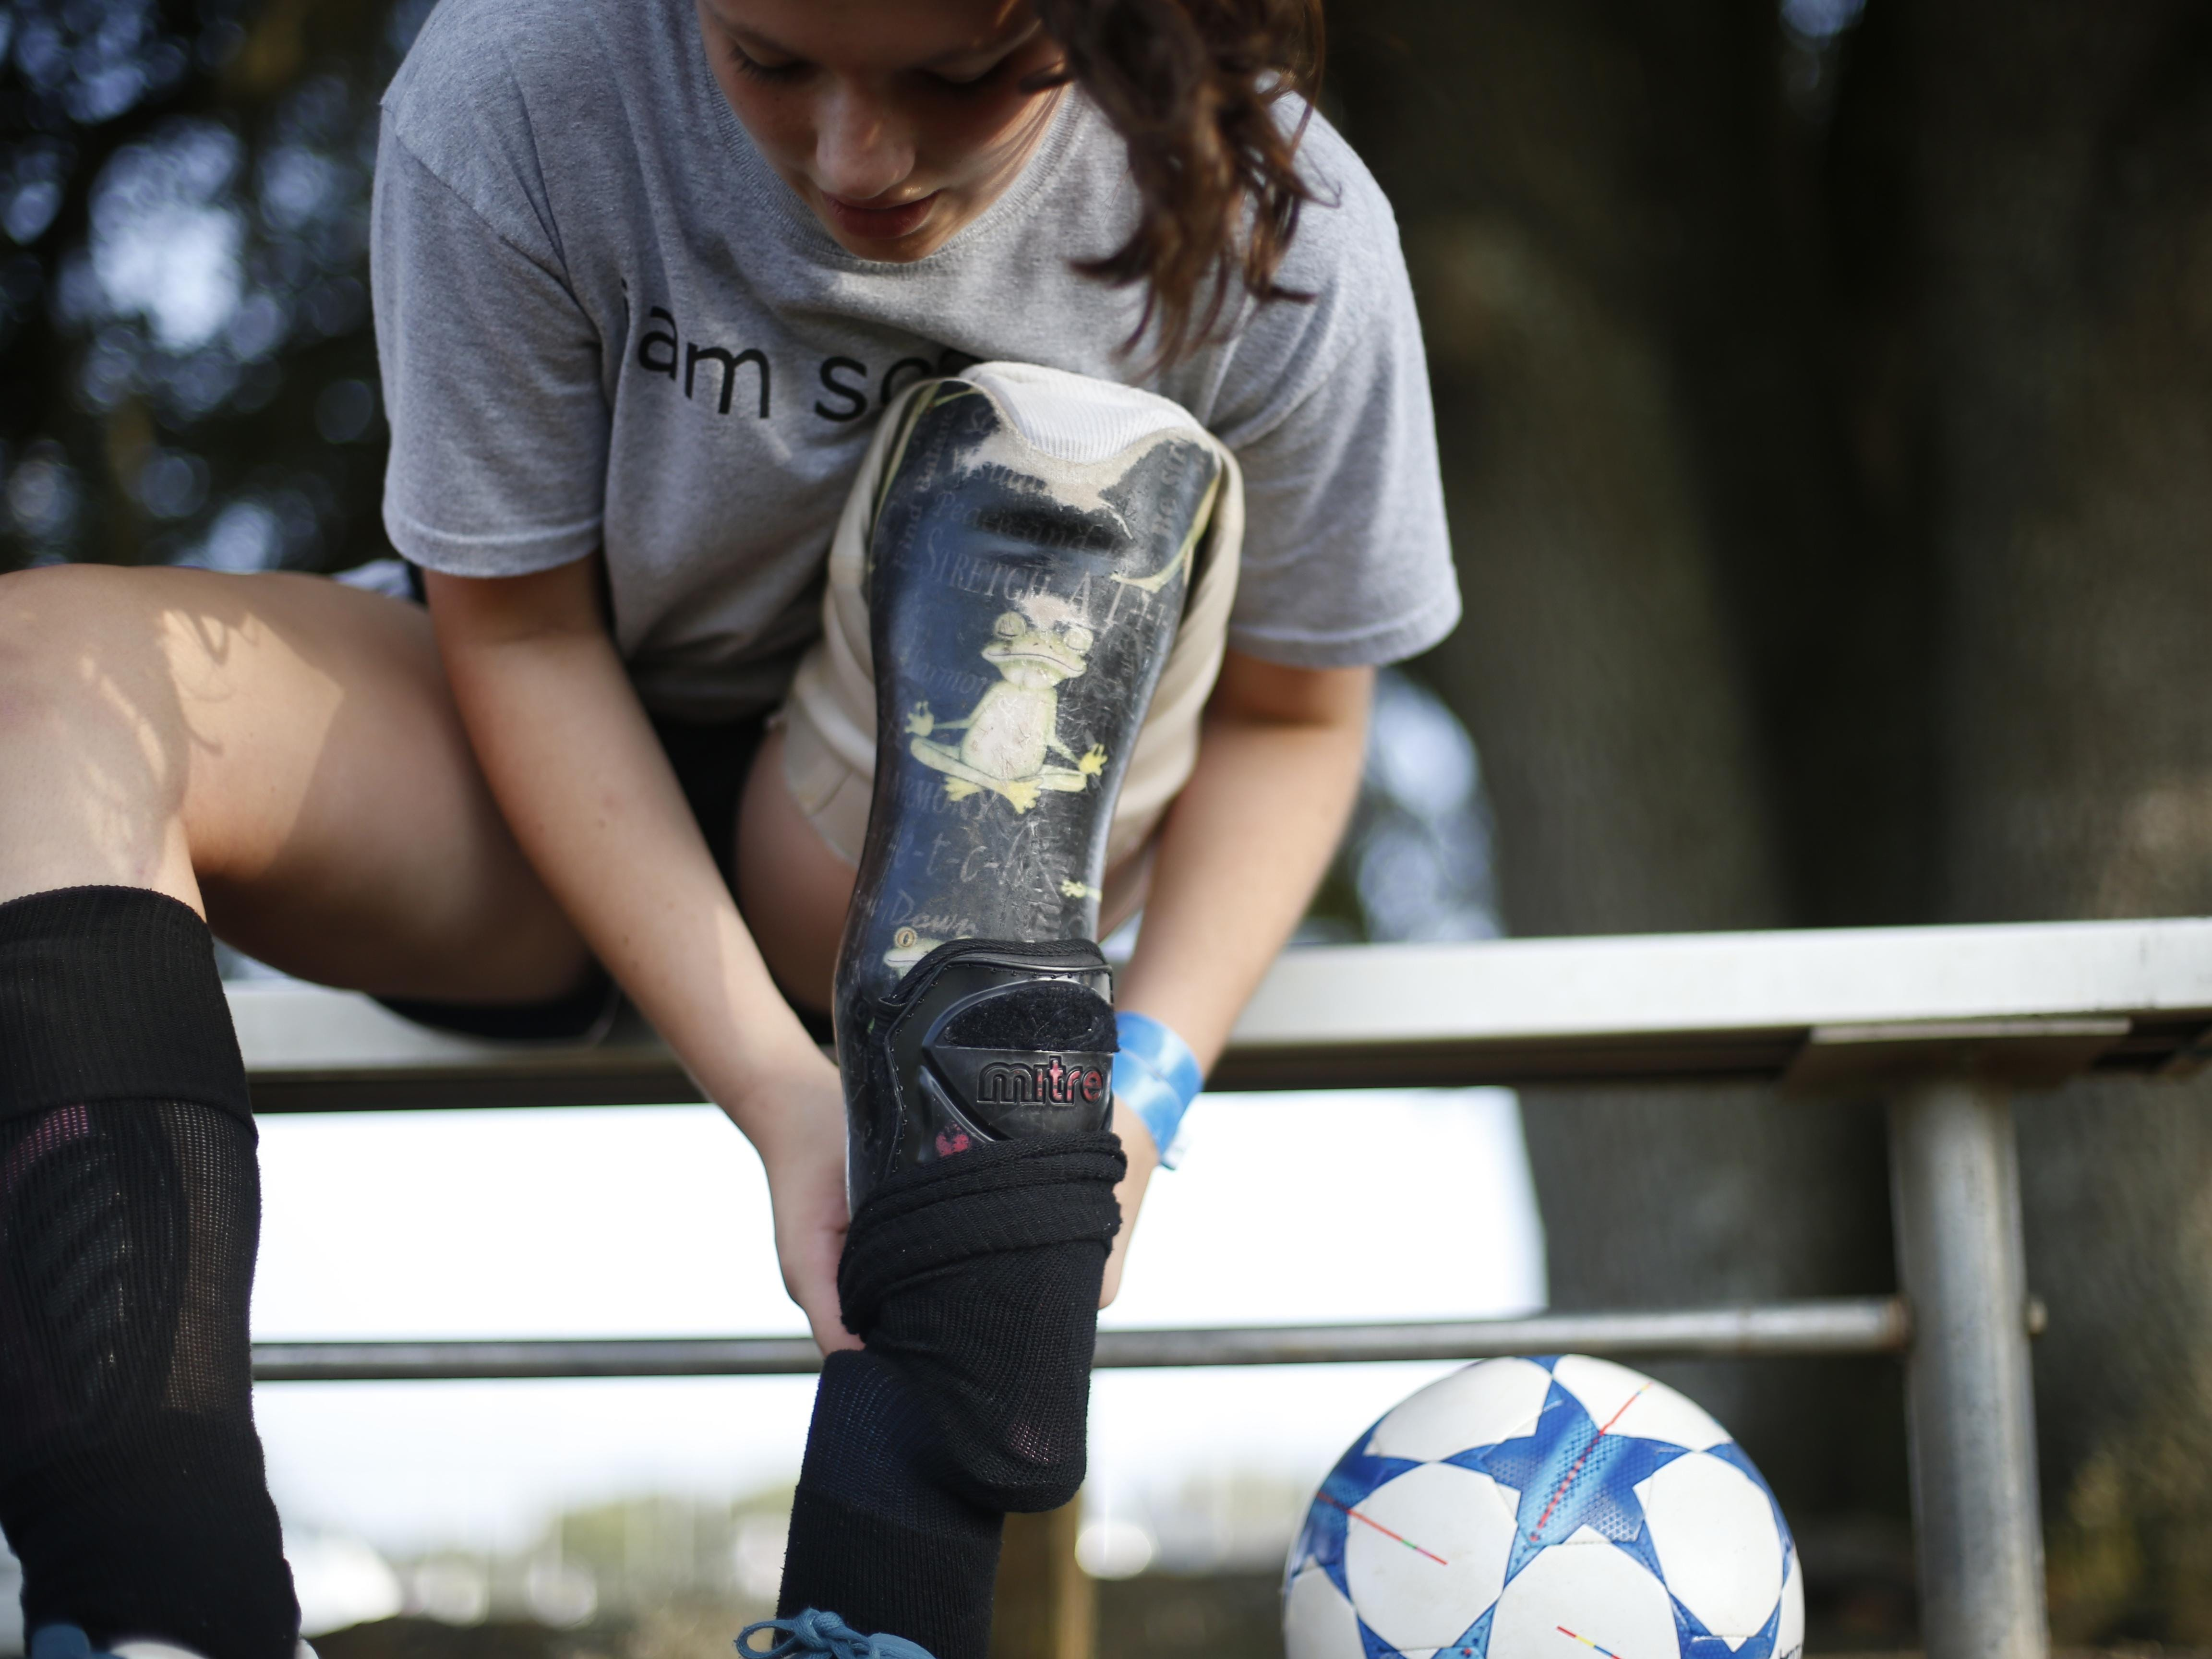 Erica Silvey, 13, covers her prosthetic leg with padding to protect her competition before practice with the Tottenham Hotspur Tallahassee 15U Select team she joined for the summer.